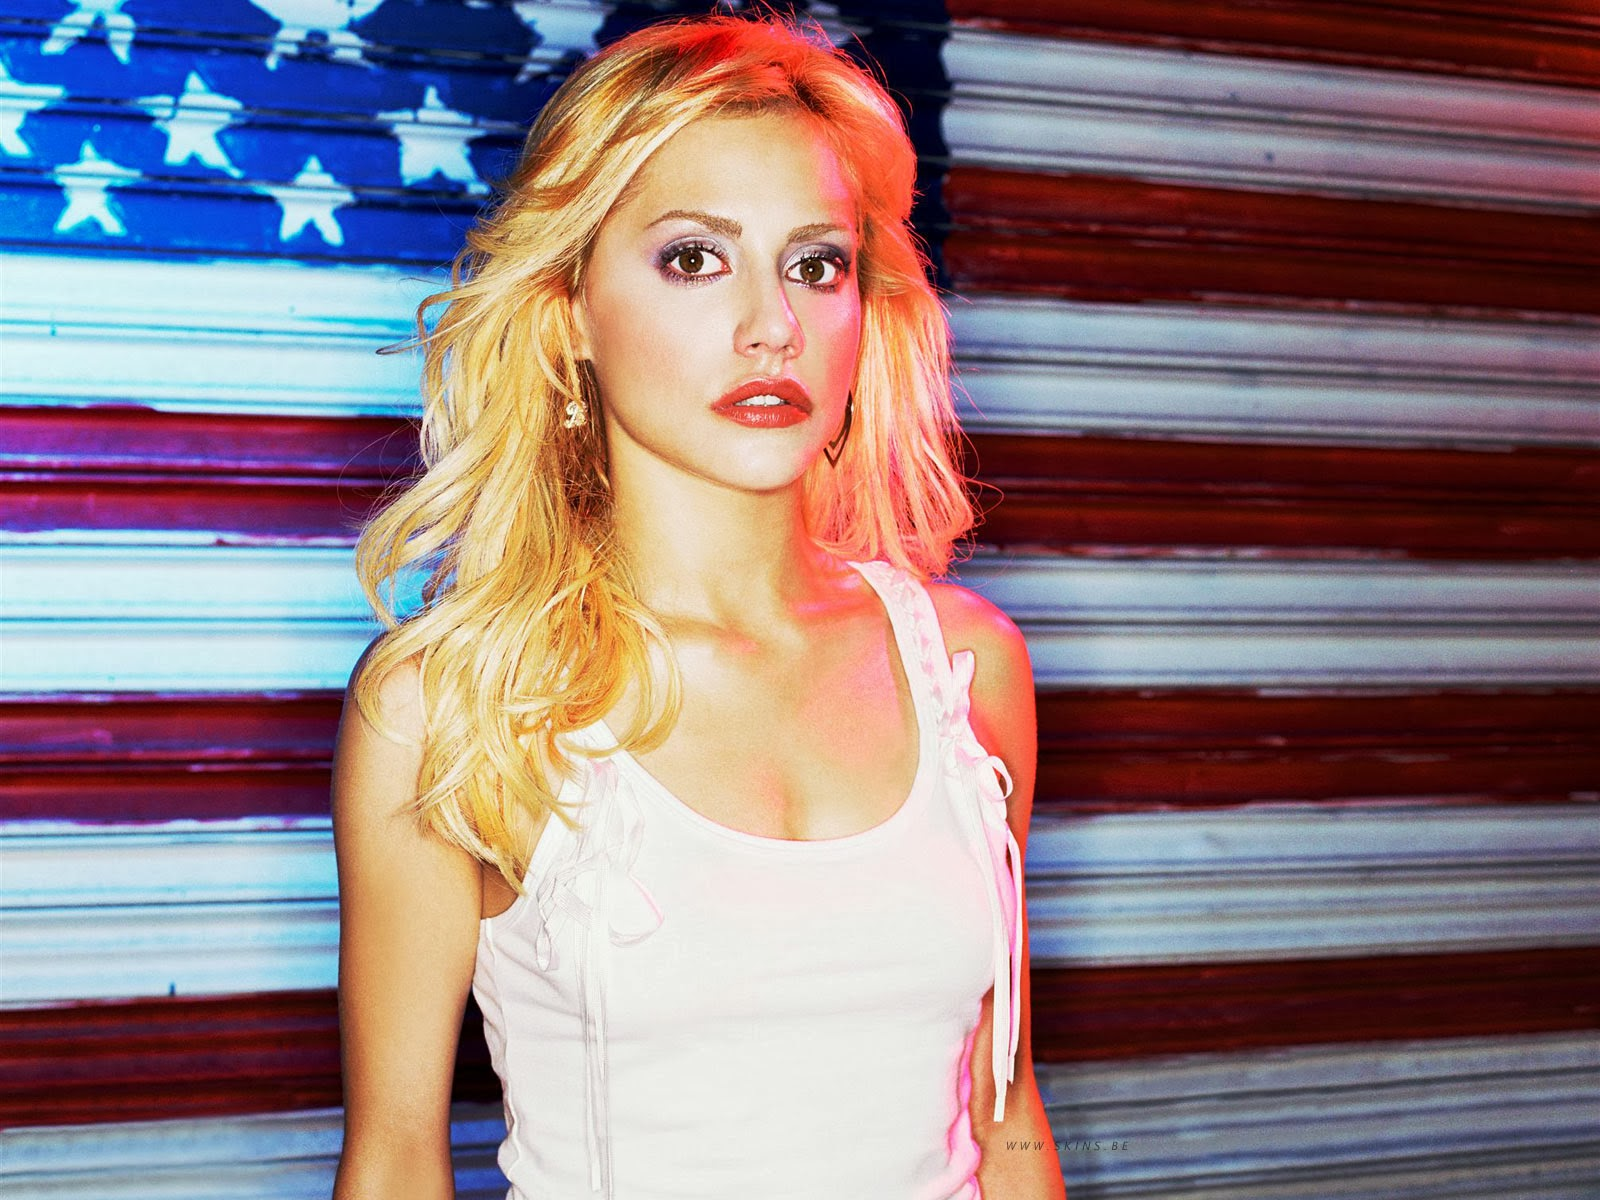 Buried Evidence: The Strange Death Of Brittany Murphy ... Brittany Murphy